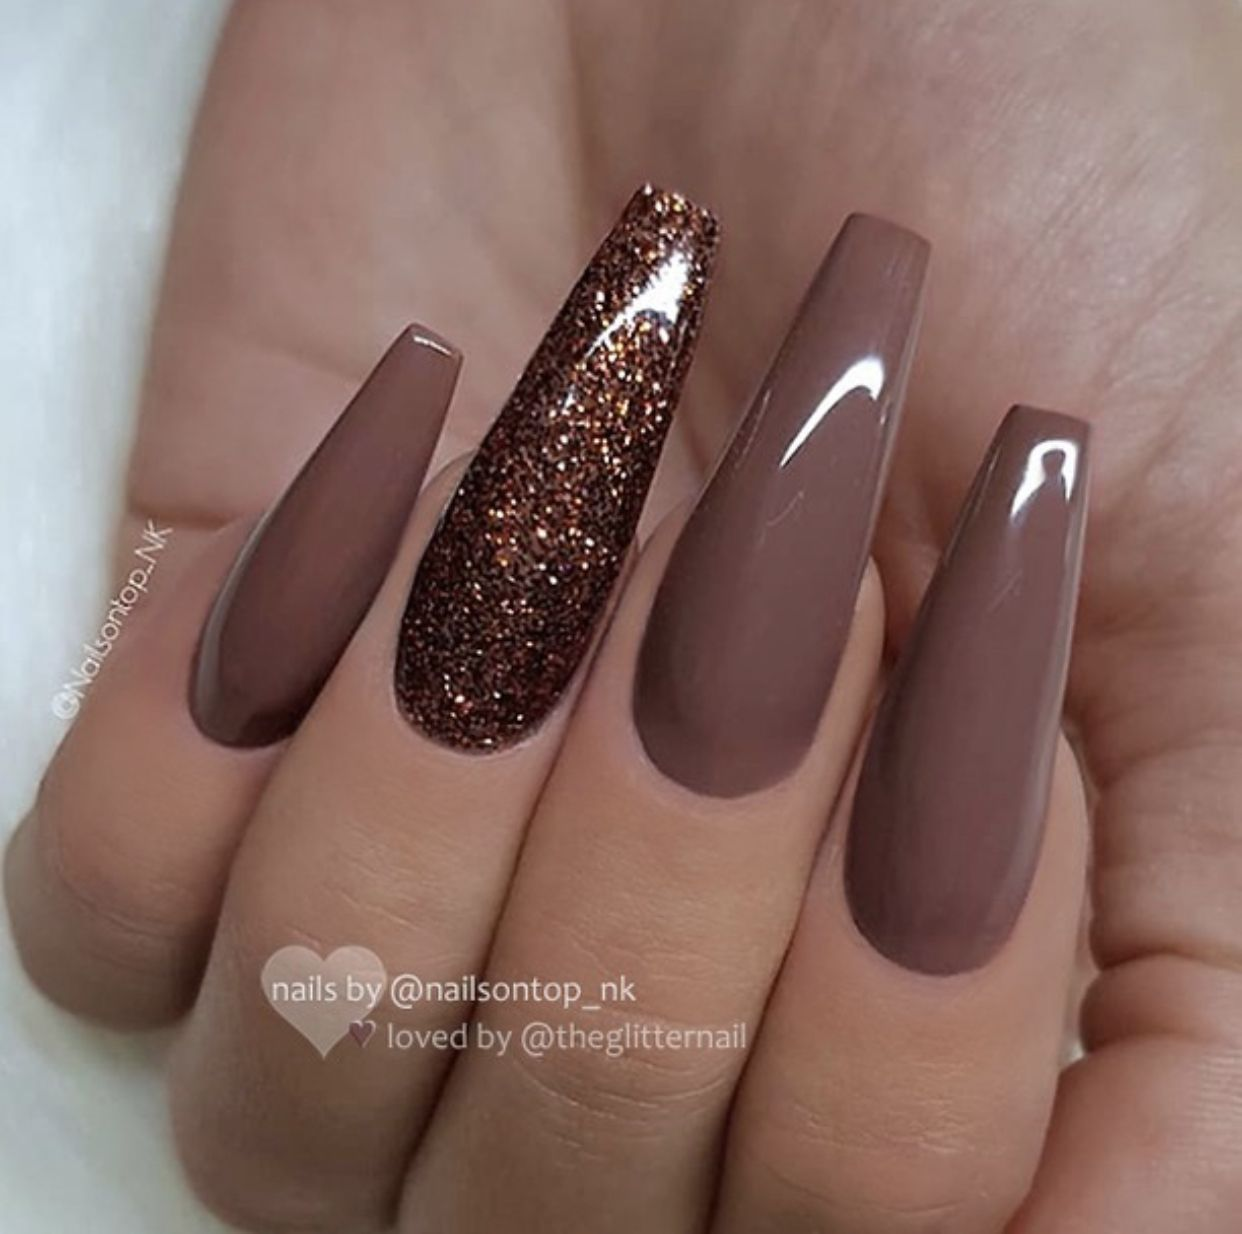 Cookiepower50 In 2020 Fall Acrylic Nails Best Acrylic Nails Coffin Nails Designs